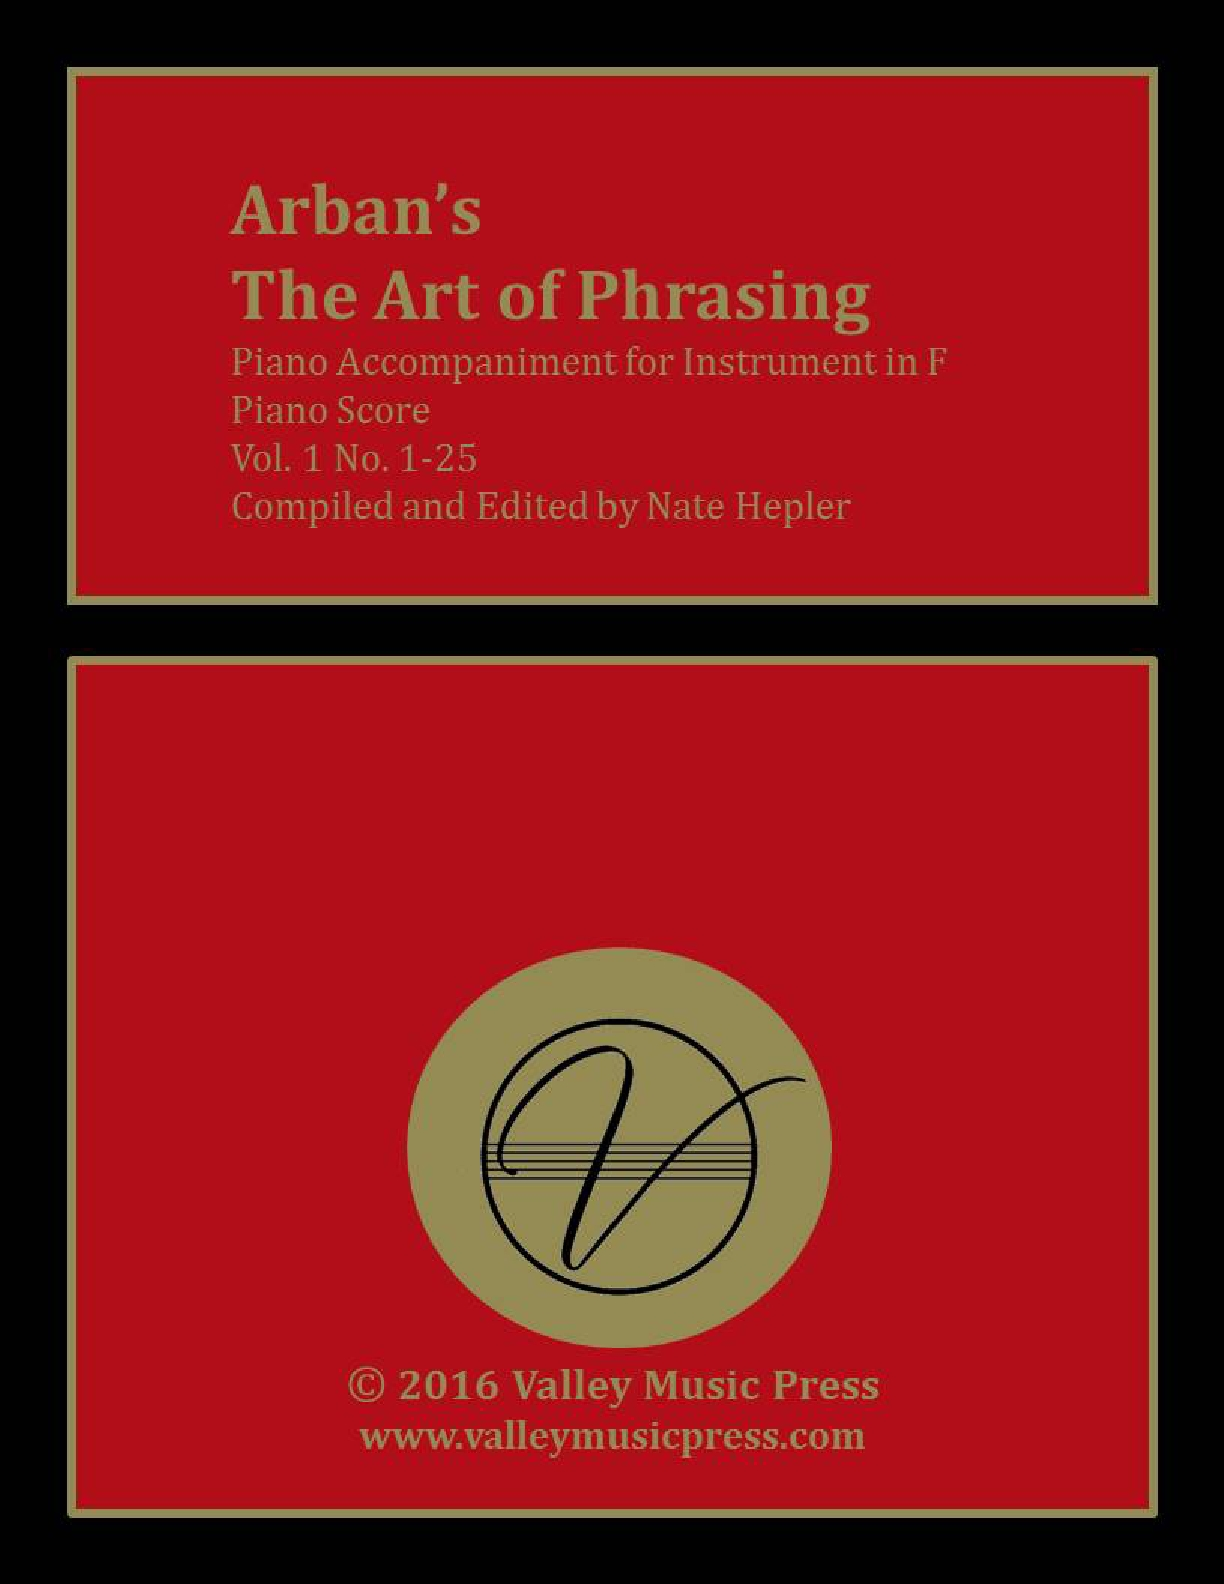 Arban Art of Phrasing Piano Accompaniment Vol. 1 No. 1-25 (Hrn)